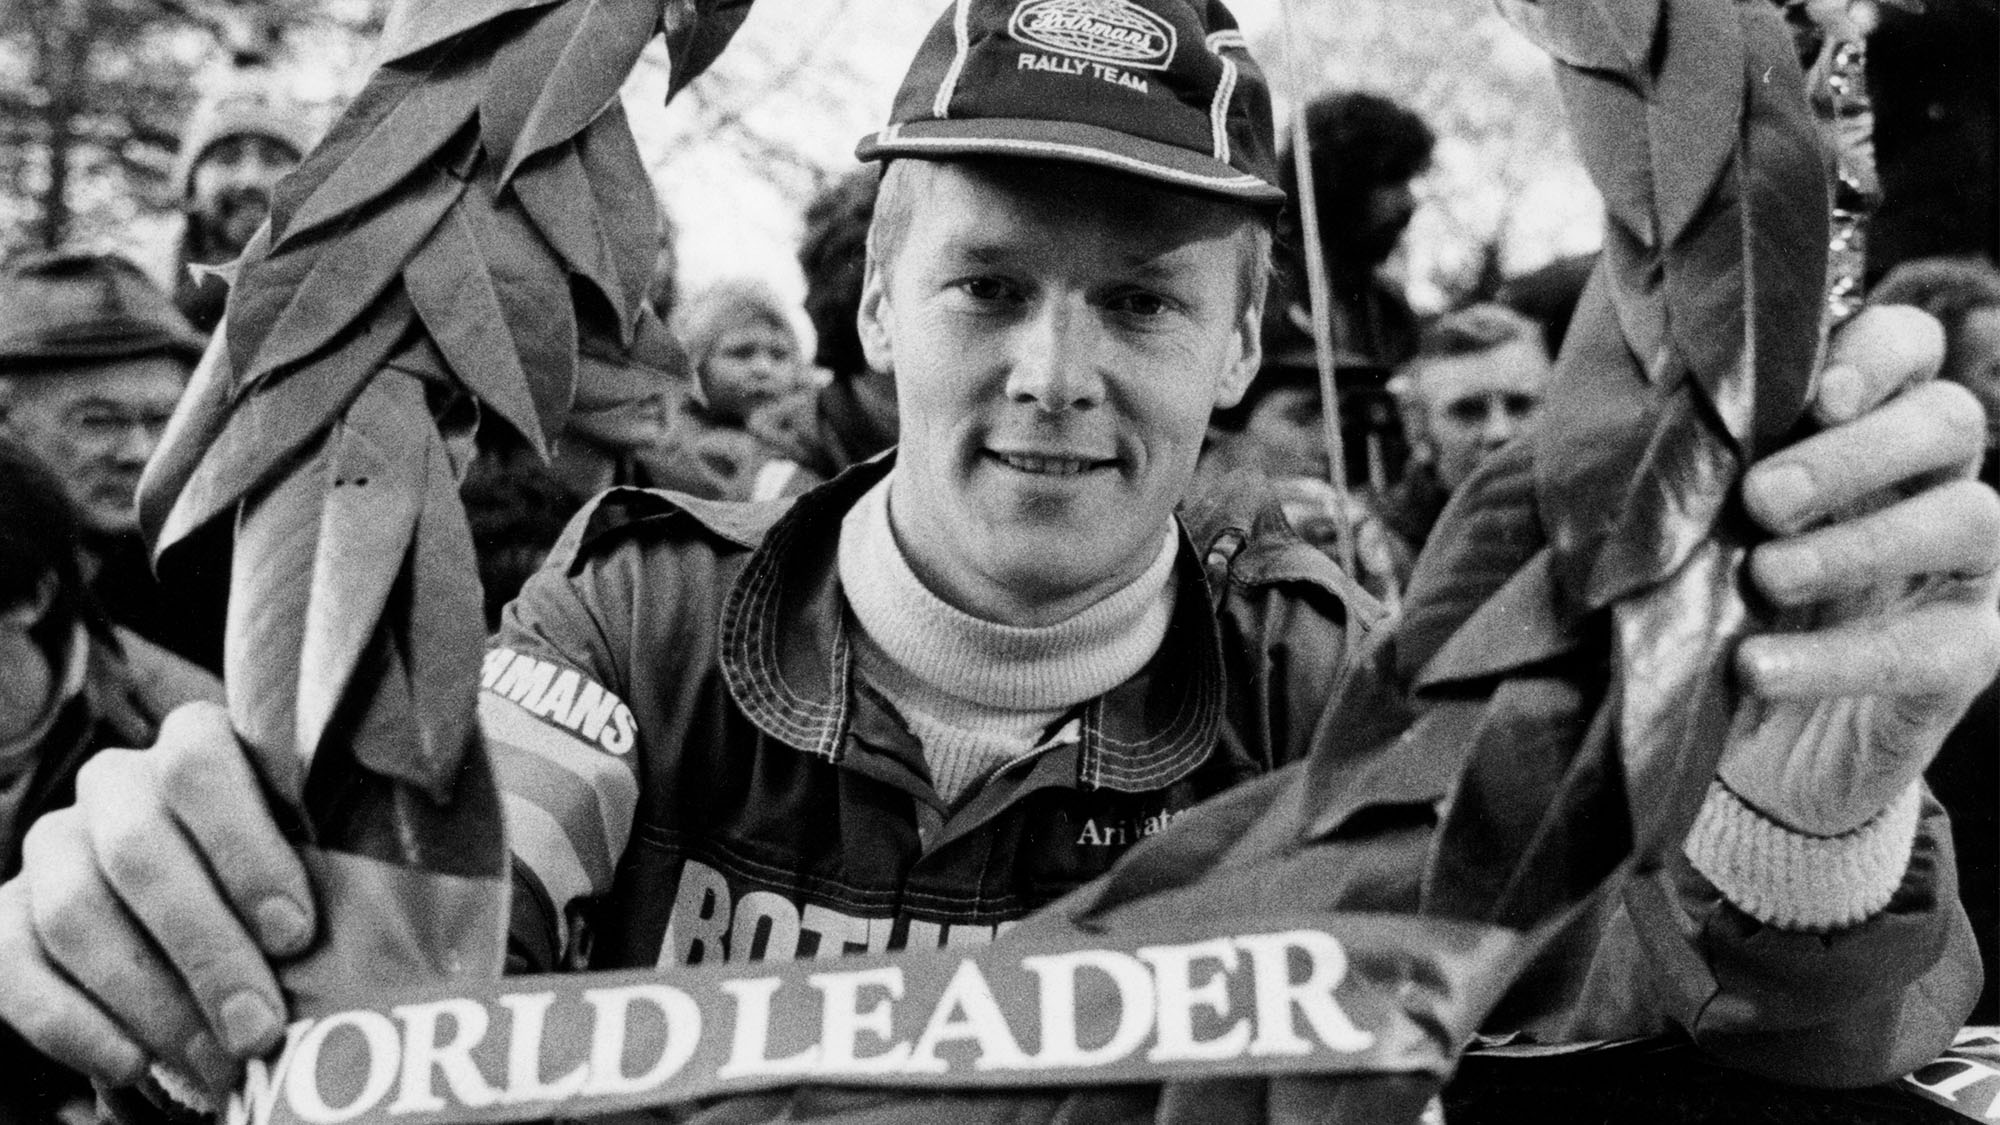 Ari Vatanen, the World Rally Champion, 1981. His international break was in the 1976 British Rally Championship. His first World Rally Championship (WRC) was in the Acropolis Rally in 1980. He was the World Champion in 1981 with a David Sutton Ford. After an almost fatal accident in Argentina in 1985 he moved to Rally Raids. In 1995-1997 he drove in Rally Raids for Citroen. (Photo by National Motor Museum/Heritage Images/Getty Images)